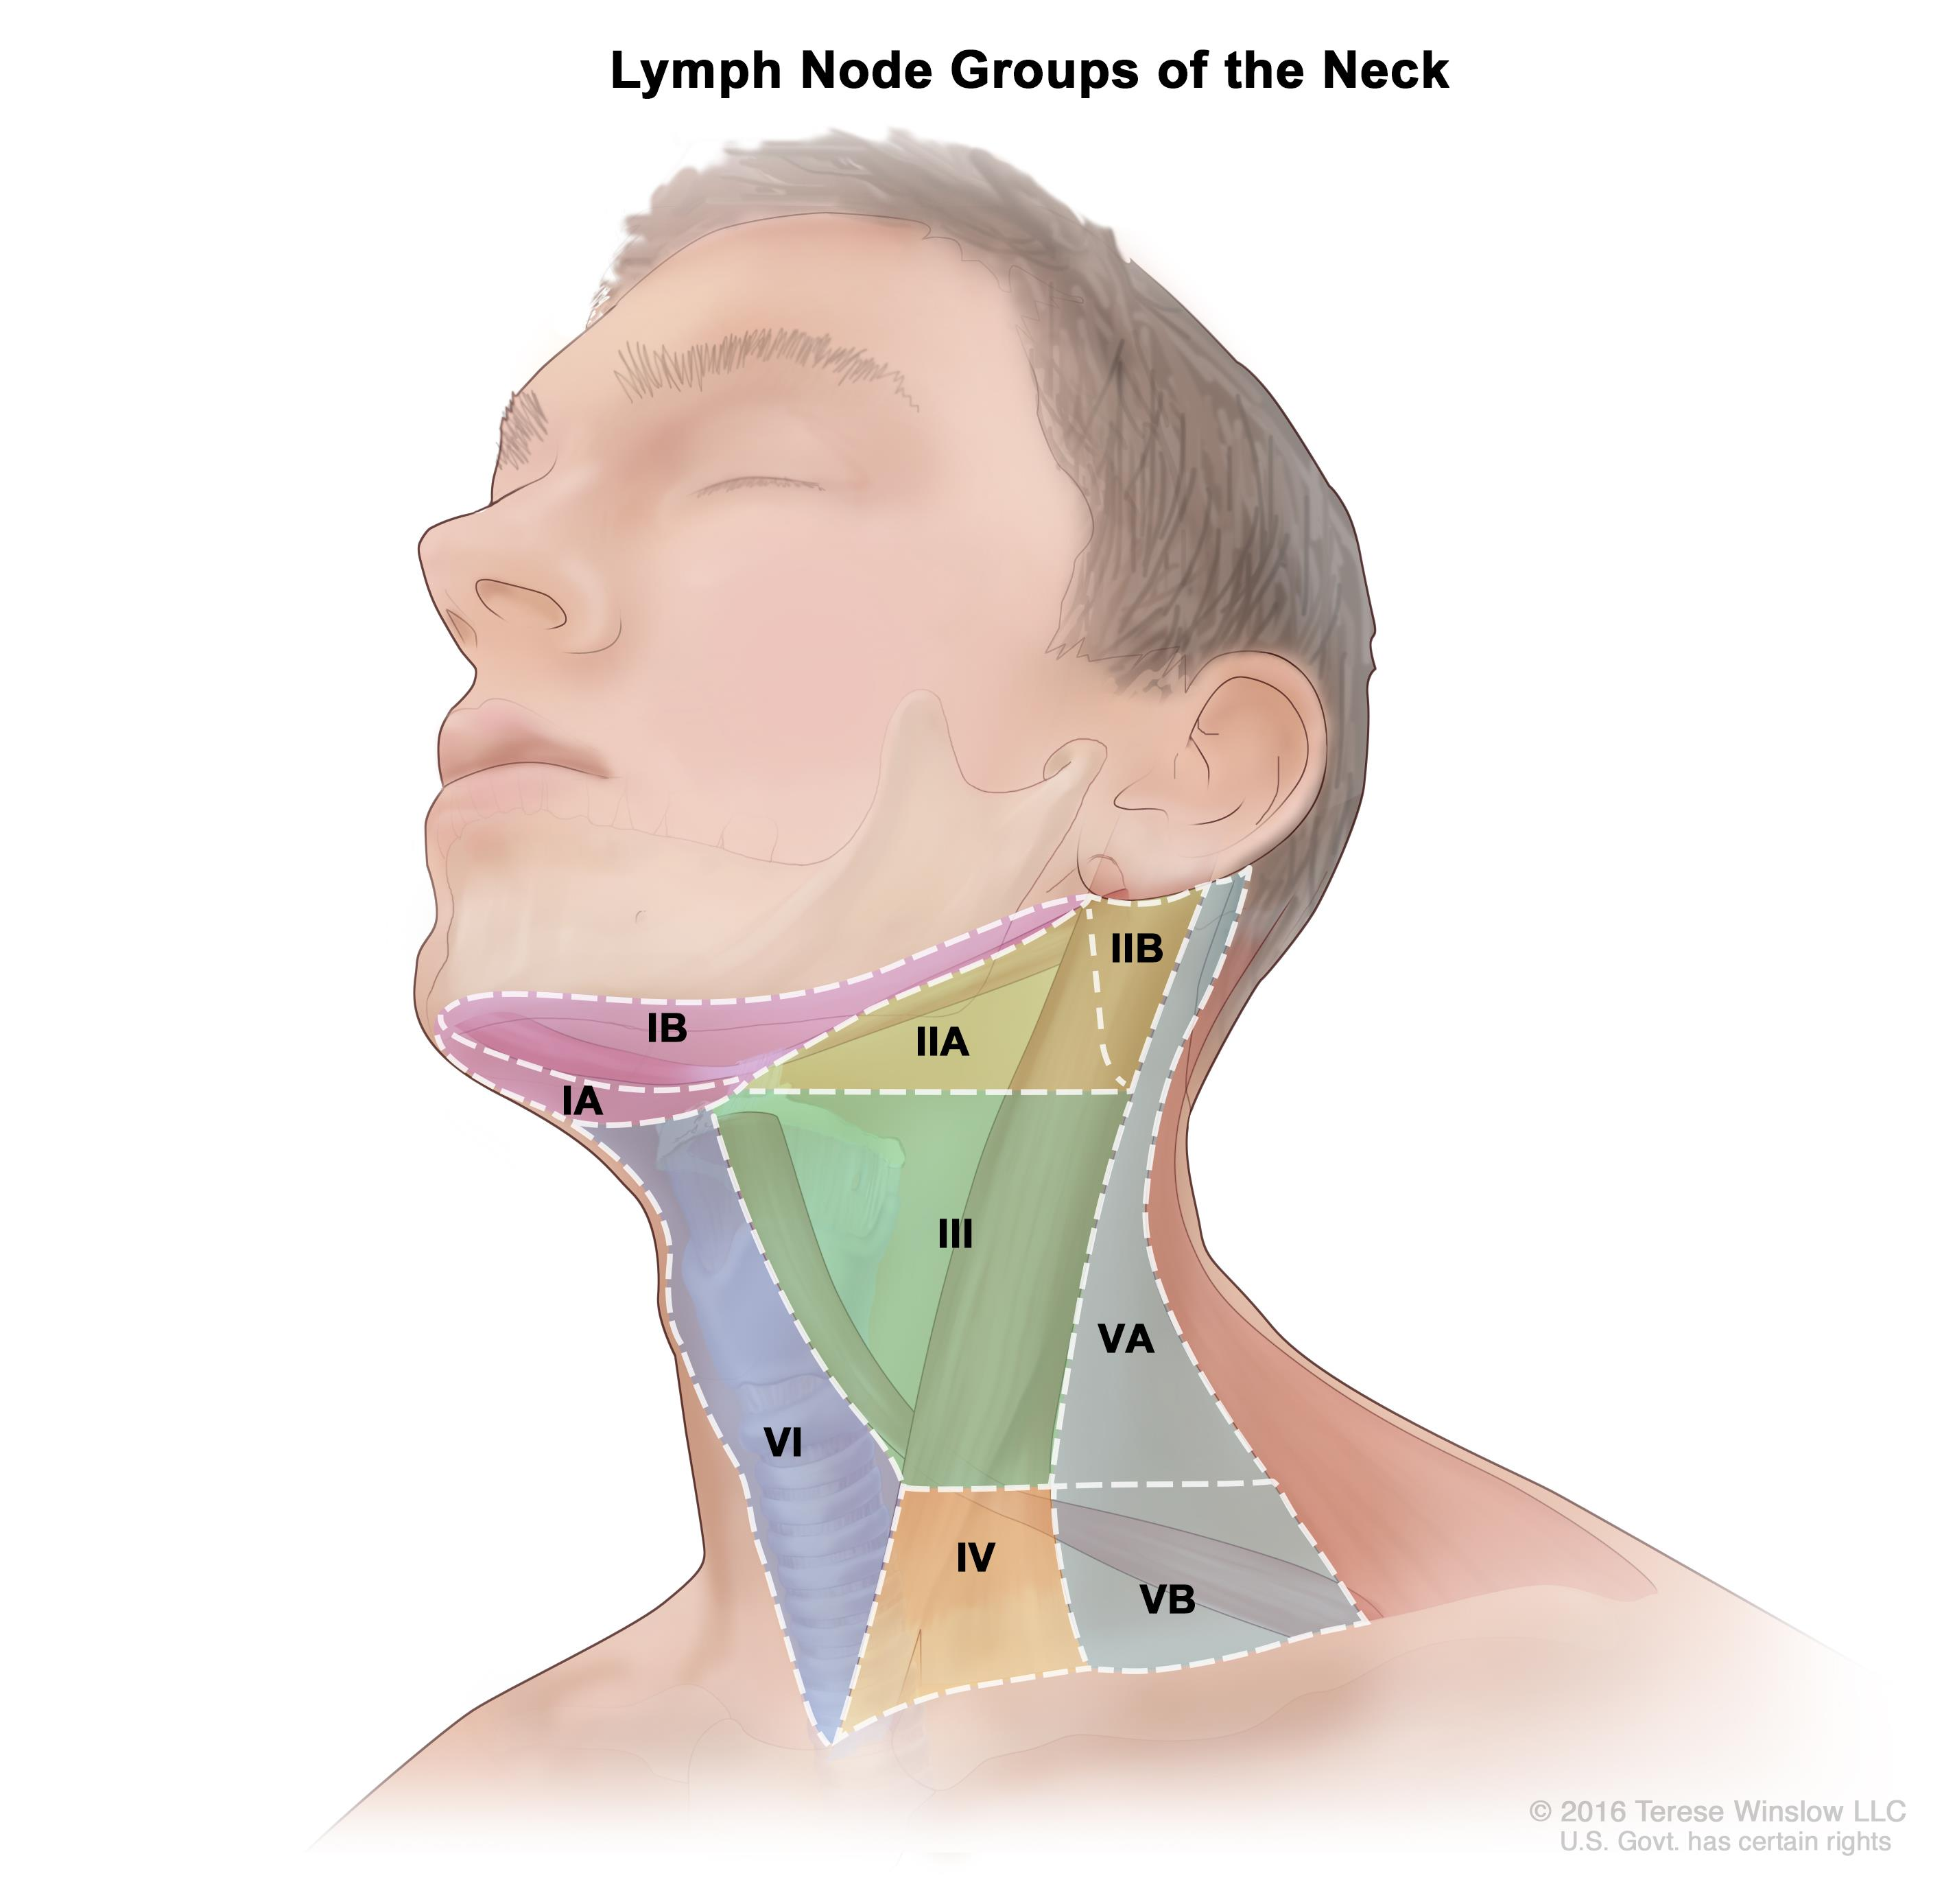 Lymph node groups of the neck; drawing shows six groups of lymph nodes in the neck: group IA and IB, group IIA and IIB, group III, group IV, group VA and VB, and group VI.